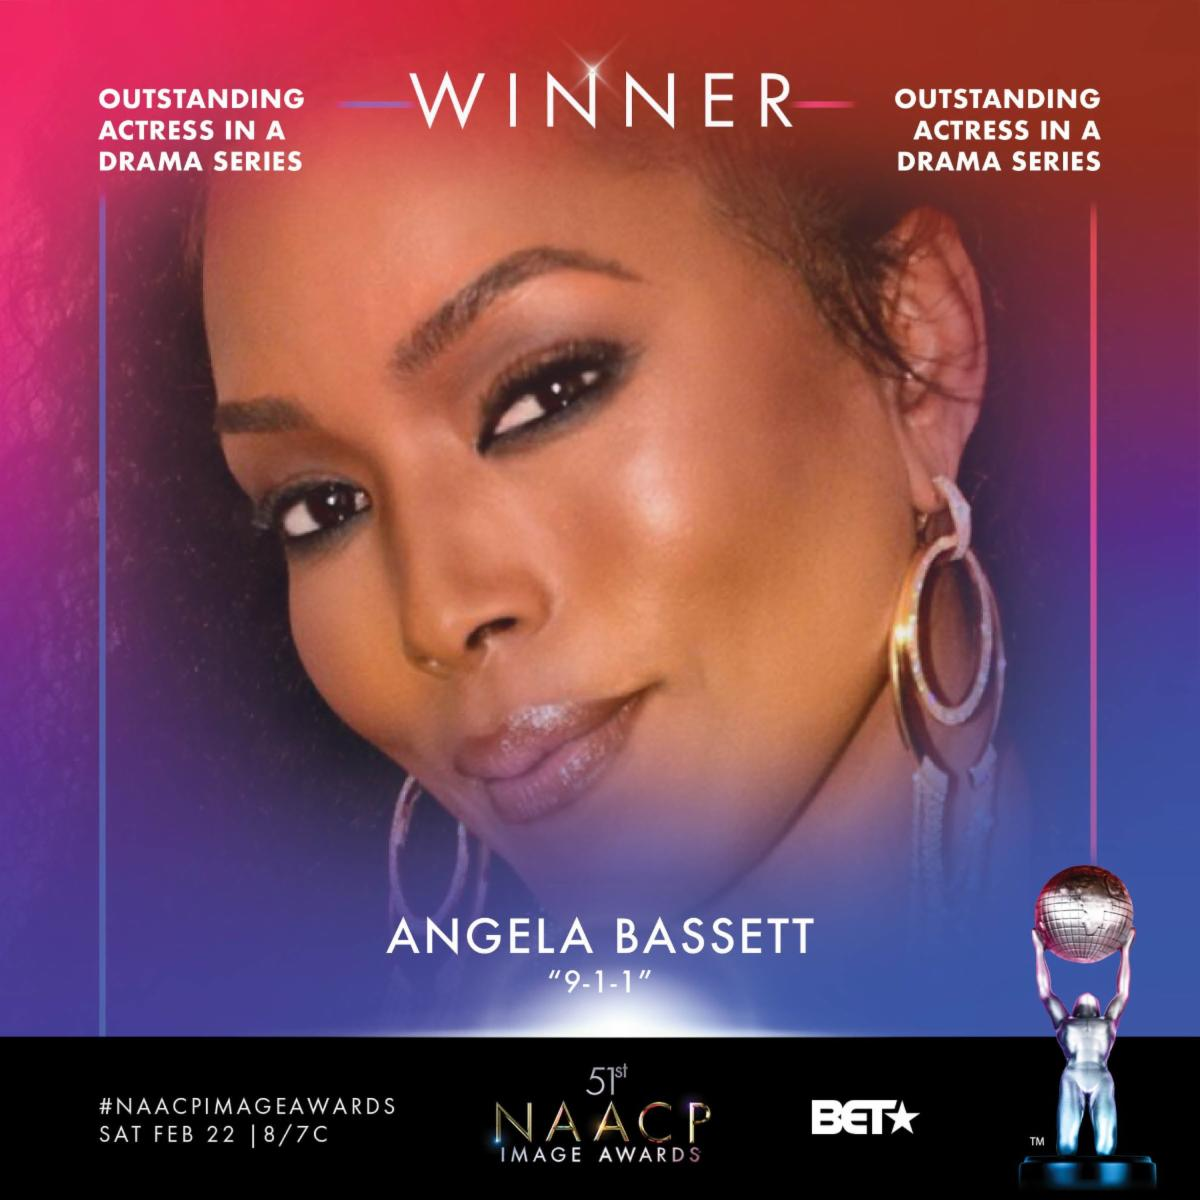 NCAAP Image Award Winner - Angela Bassett